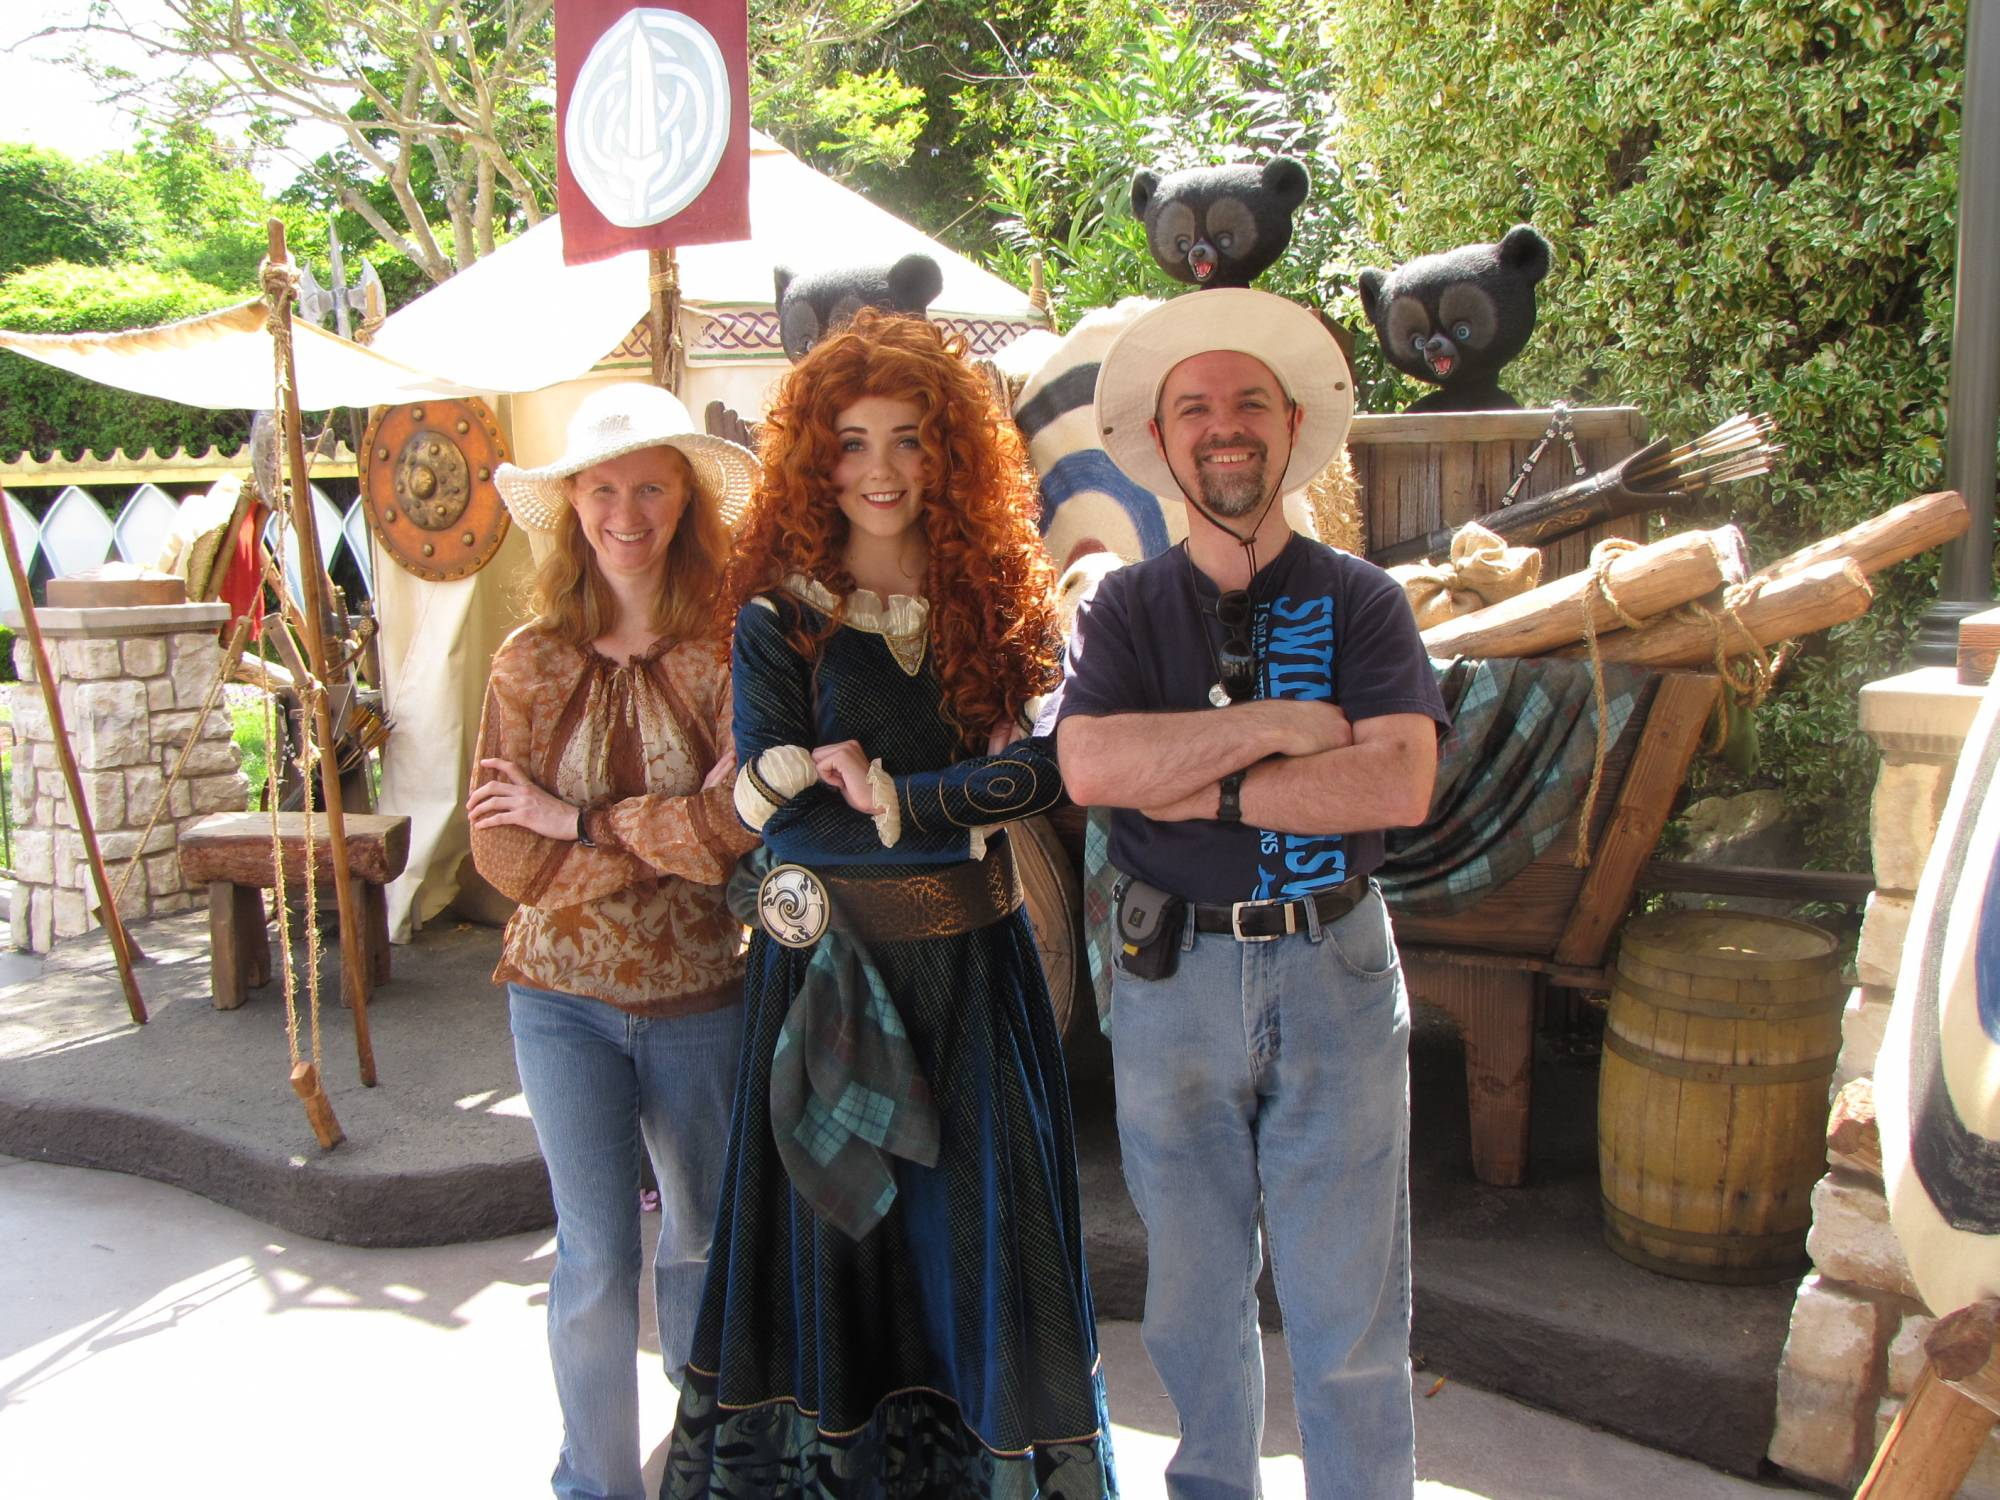 Meet Princess Merida from Brave at Disneyland |PassPorter.com